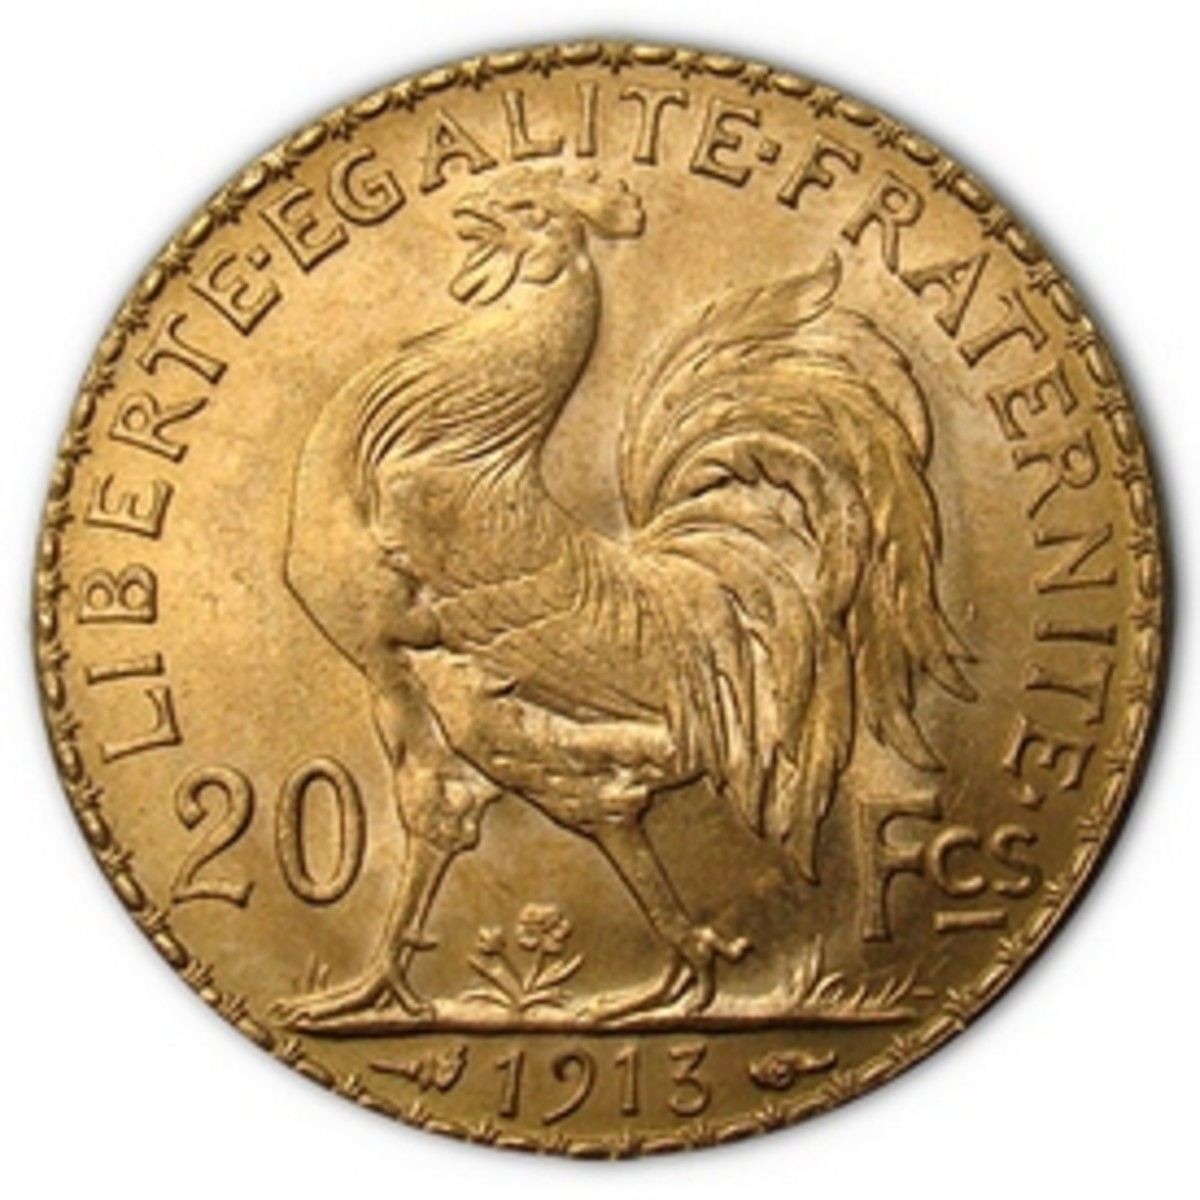 French Gold Rooster Coin